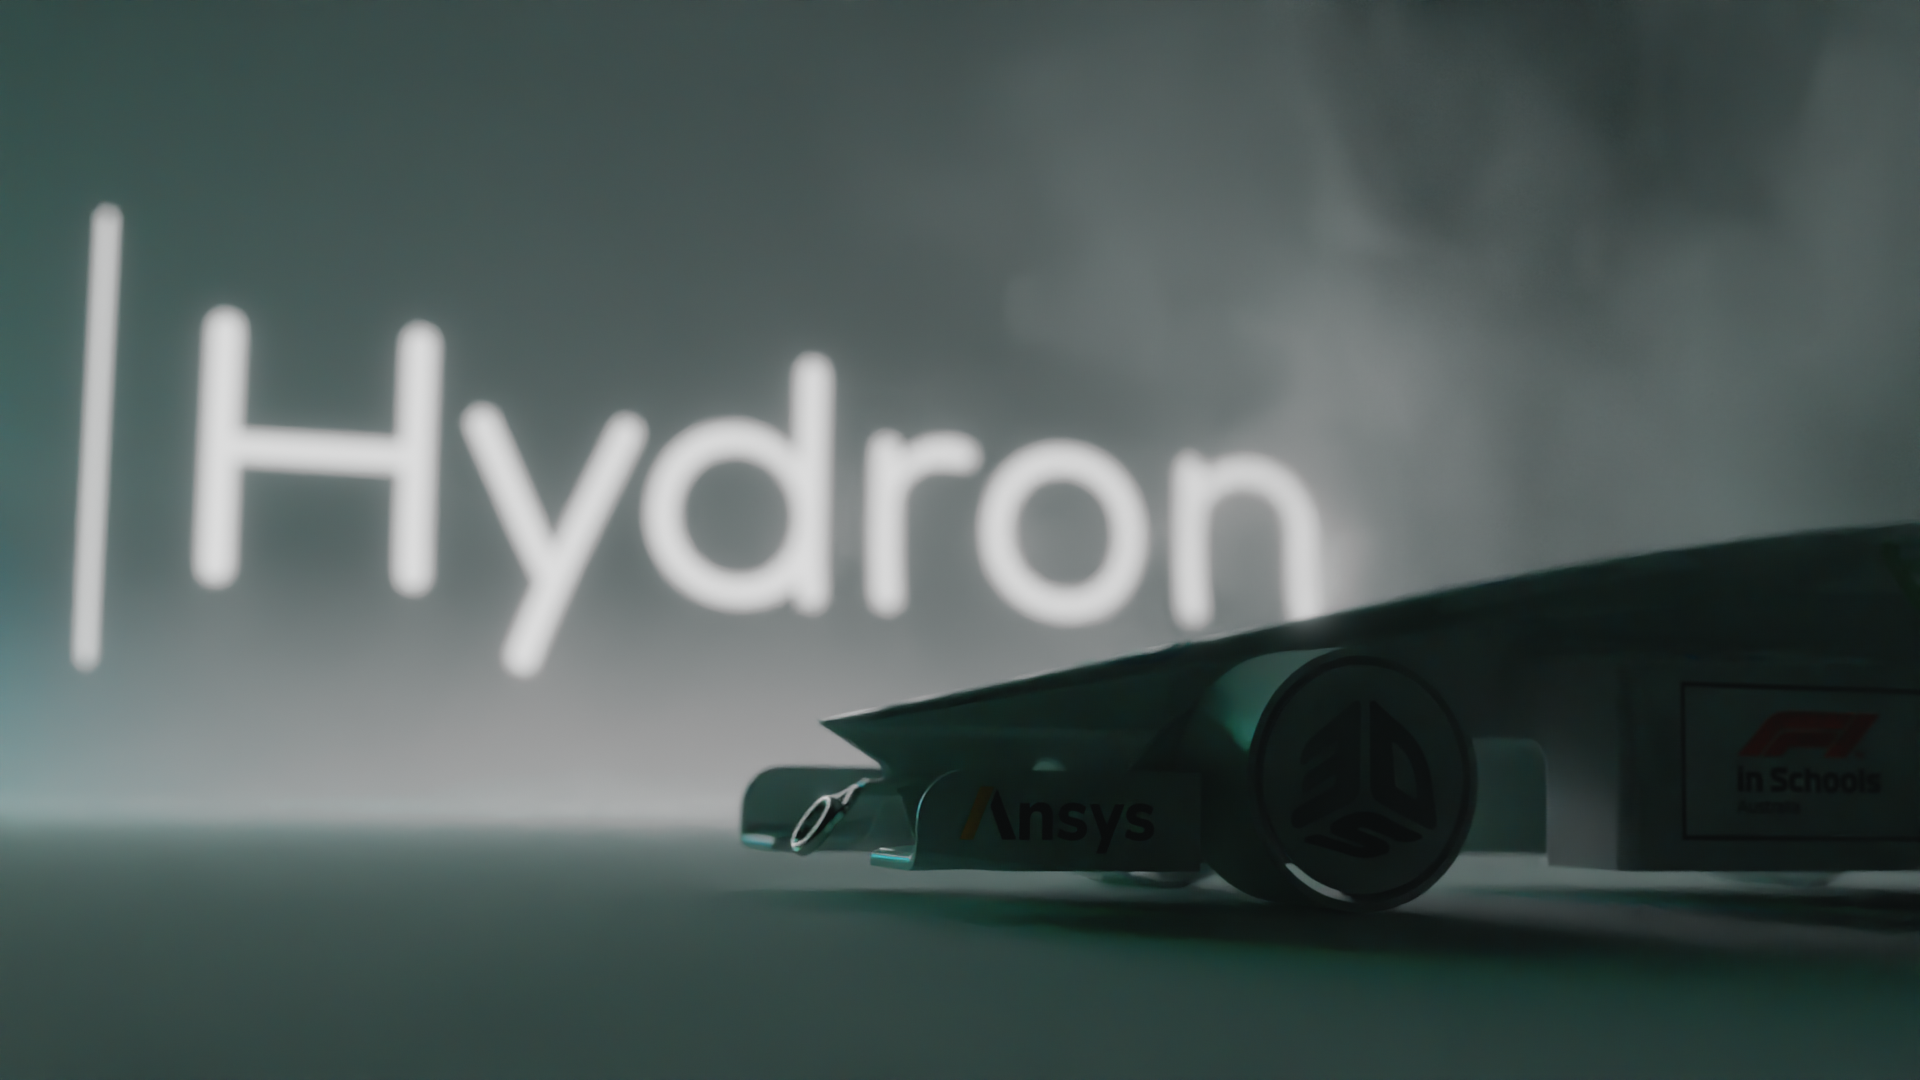 hydron car render